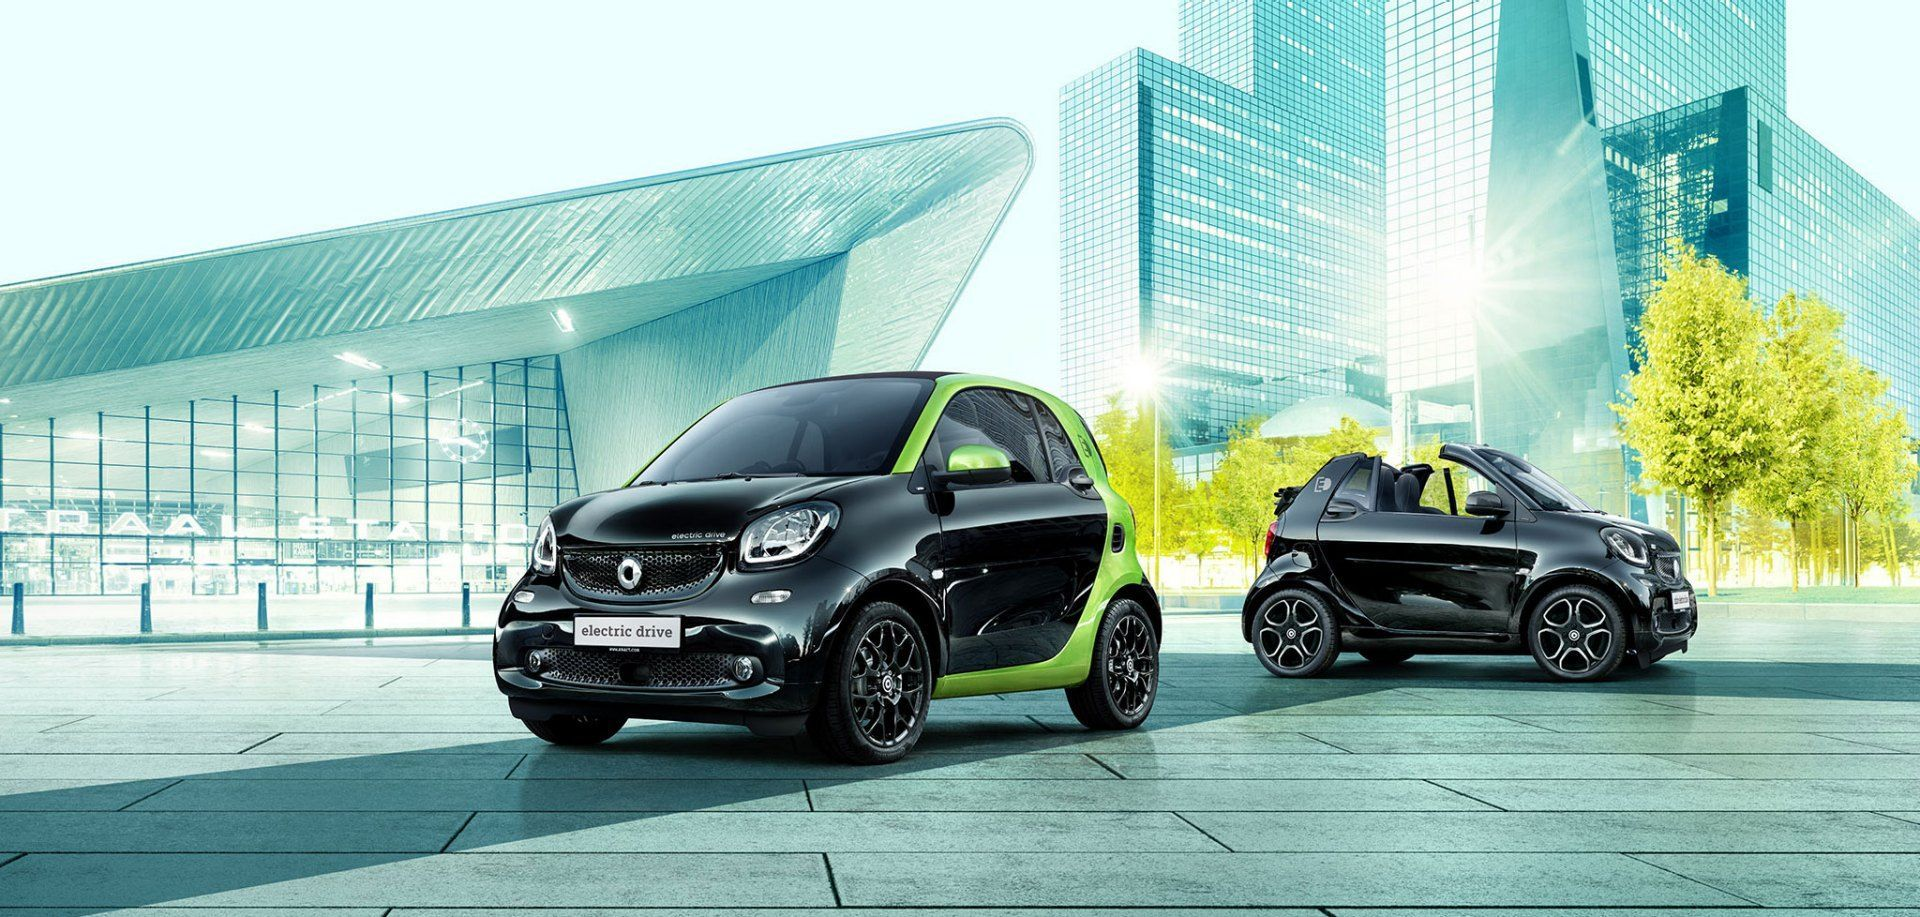 Three safety features on the new 2018 smart fortwo.